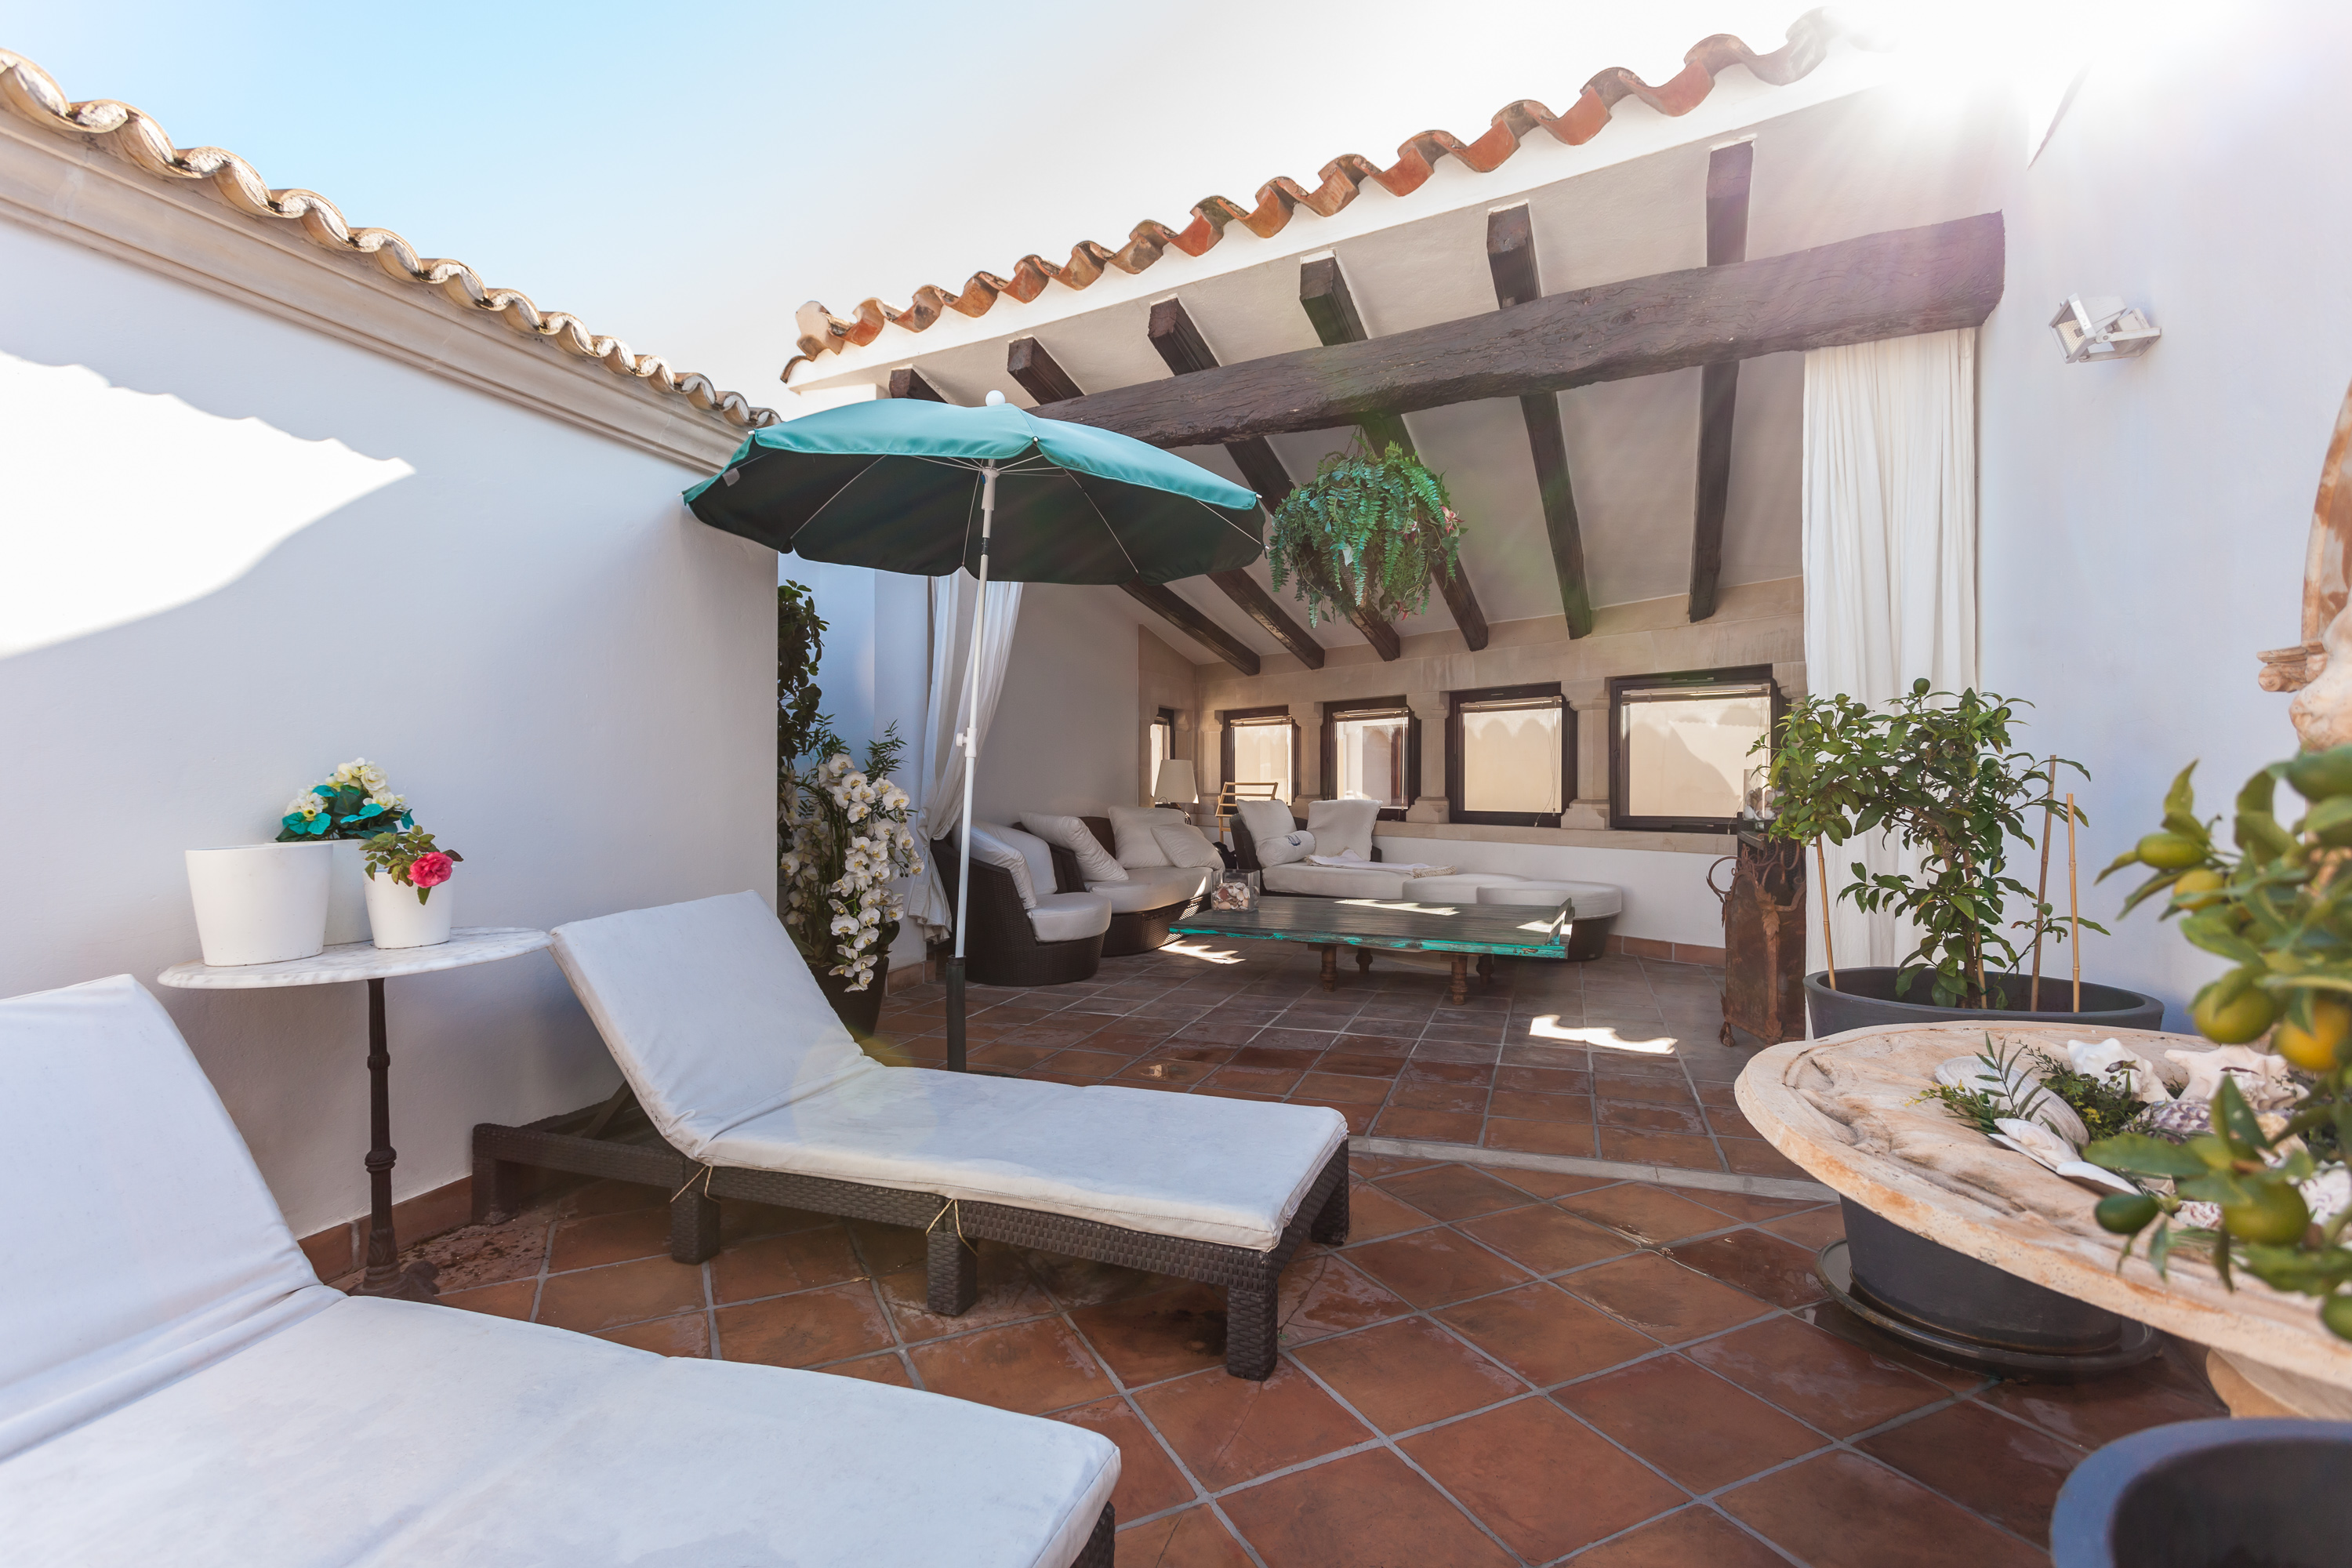 Single Family Home for Sale at Spacious penthouse with terraces Palma Center, Mallorca, 07012 Spain